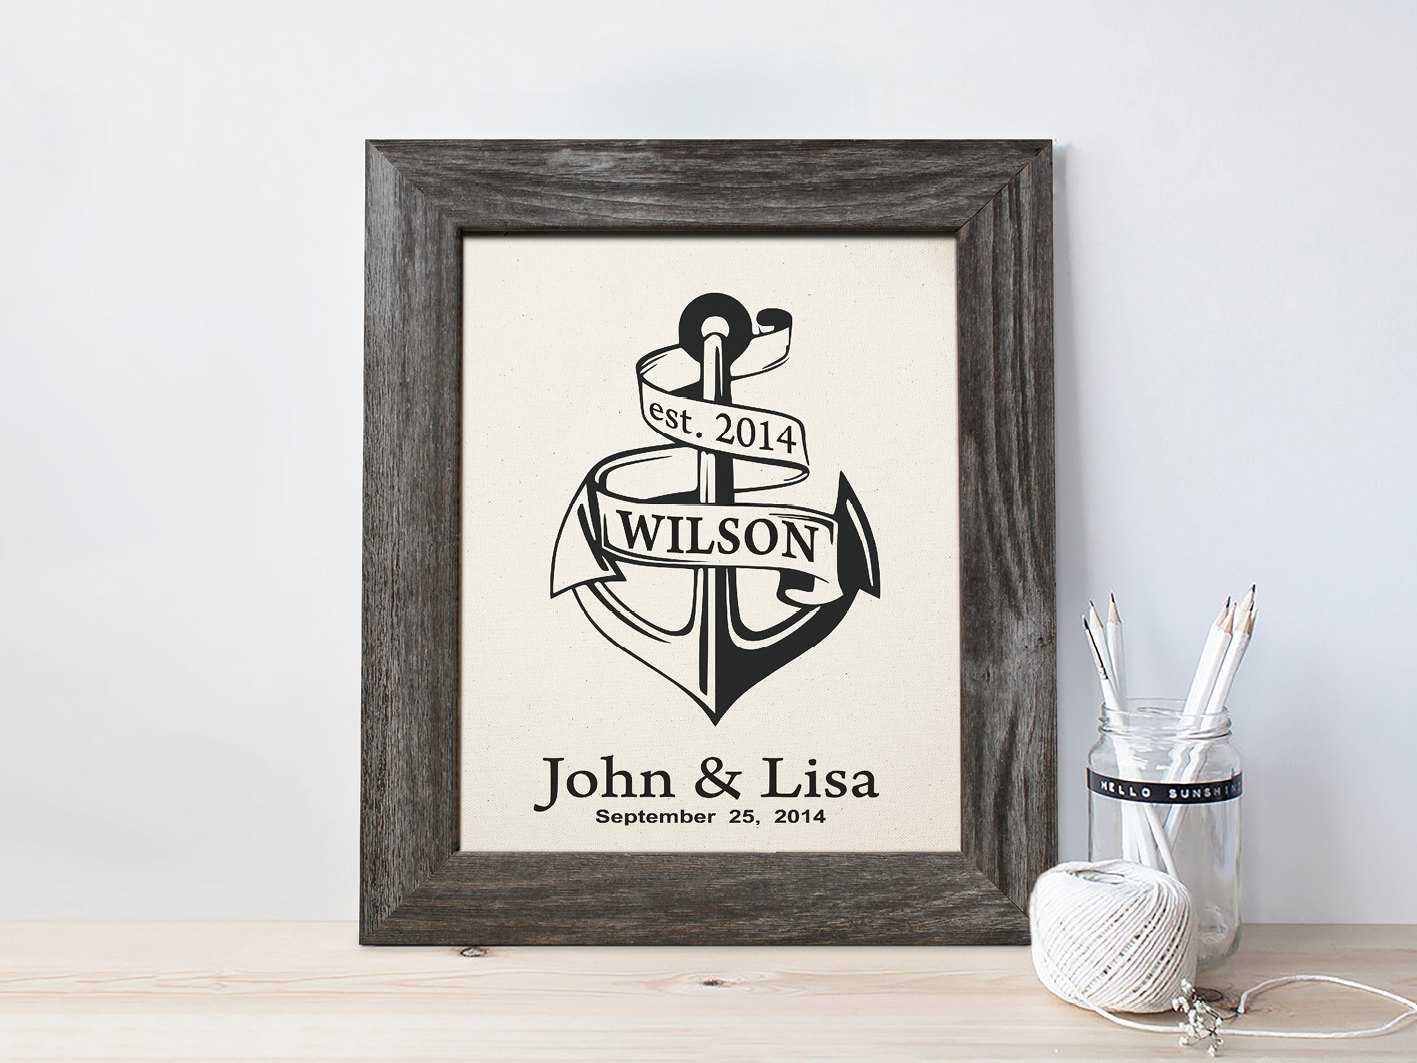 Cotton Wedding Anniversary Gifts For Men: Cotton Anniversary Gift For Men Anniversary Gift For